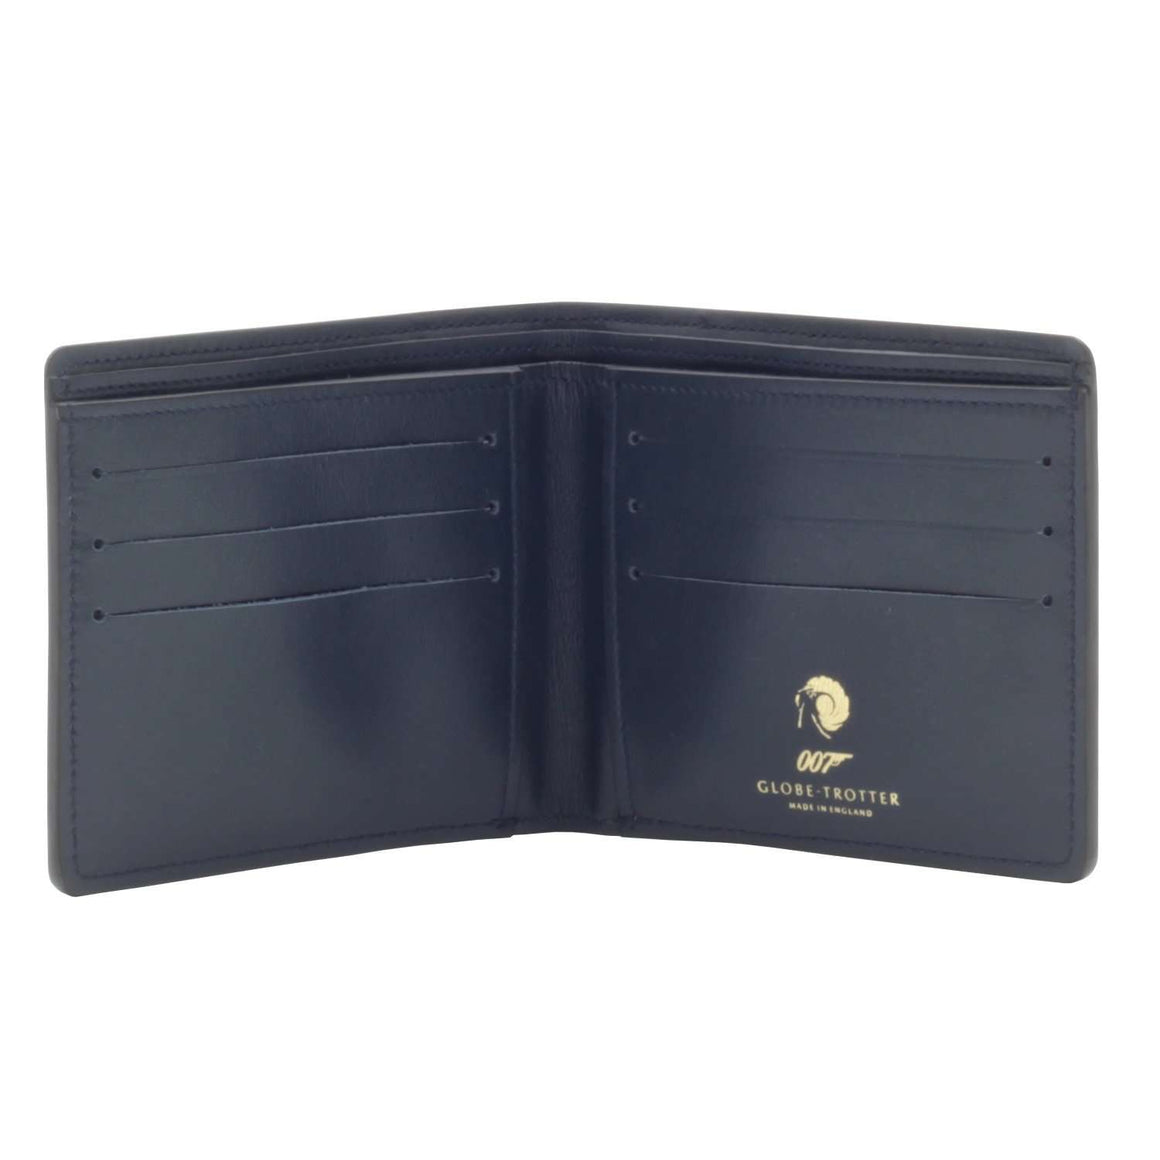 007 Navy Leather Billfold Wallet By Globetrotter l Official James Bond Store